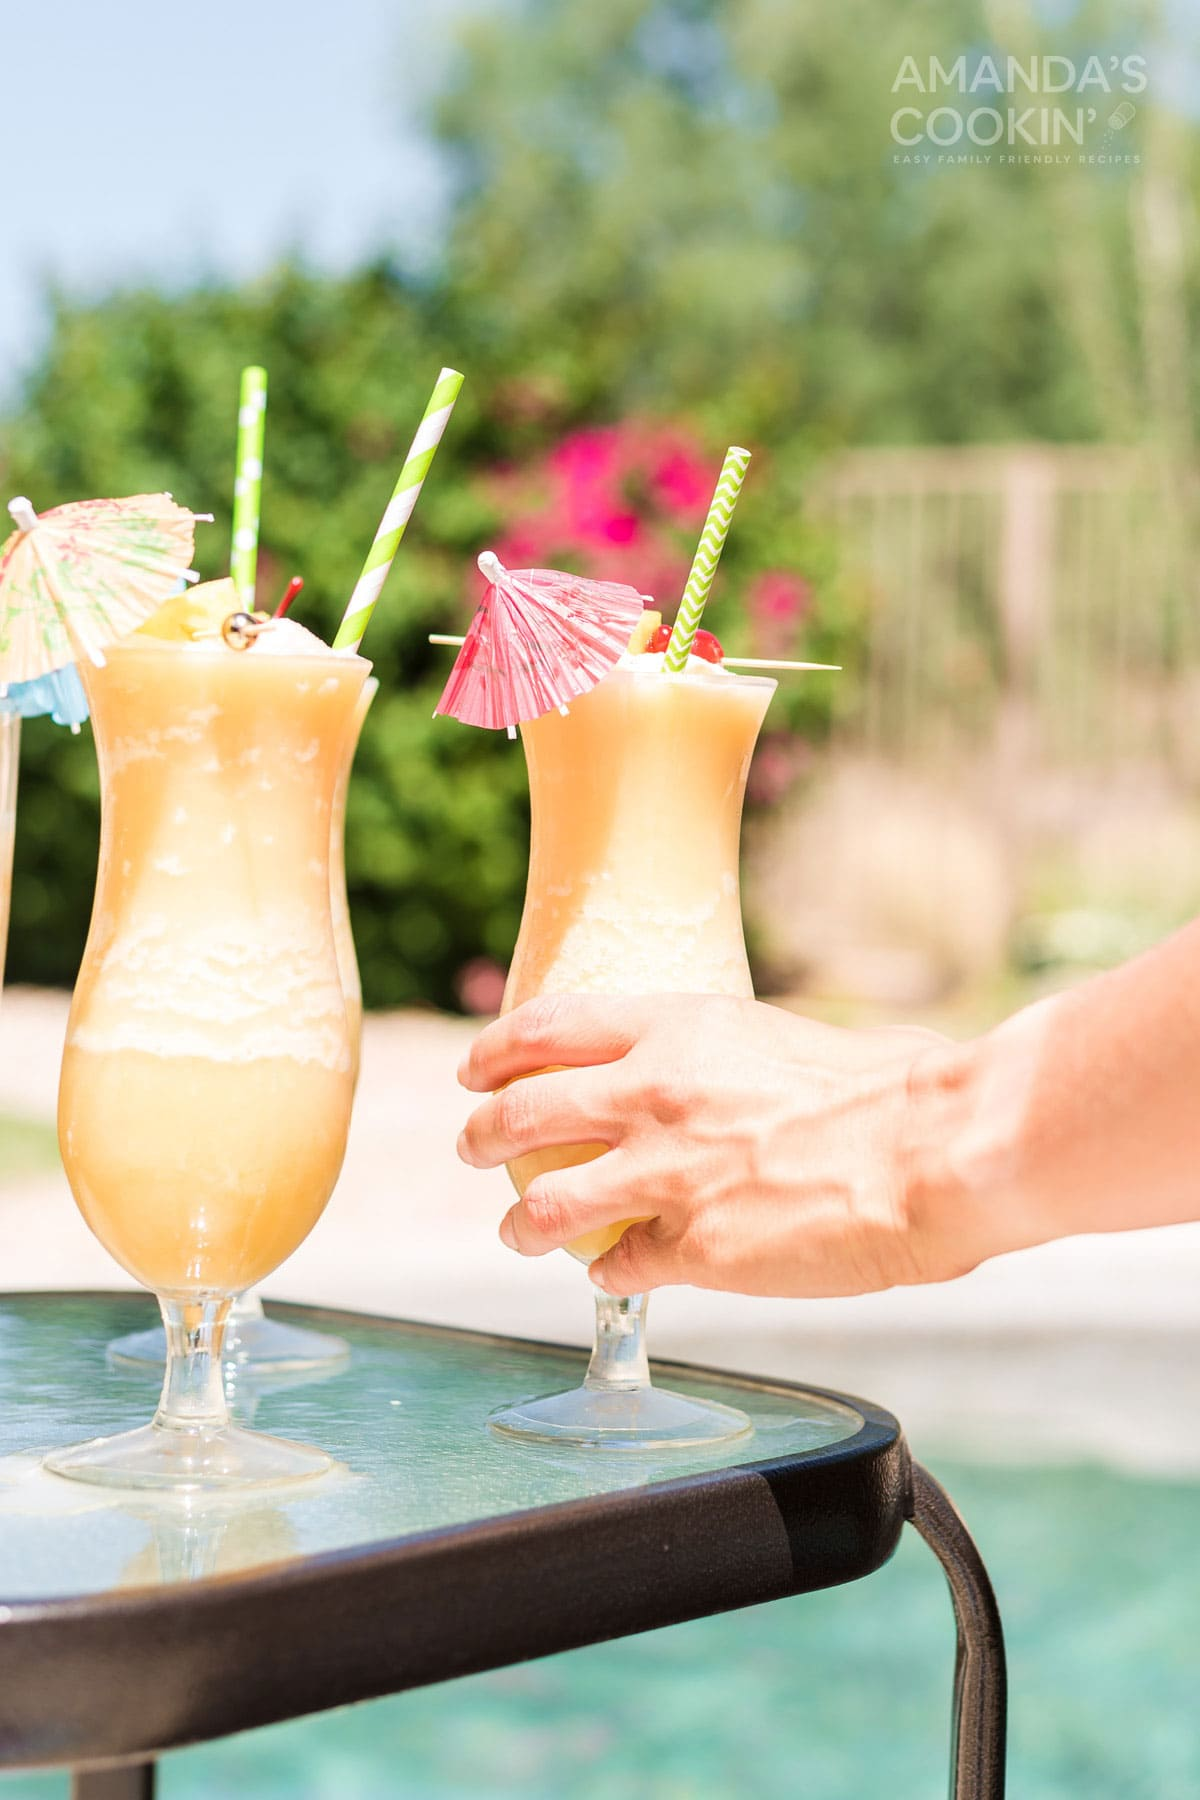 hand reaching for and picking up a pina colada cocktail by the pool